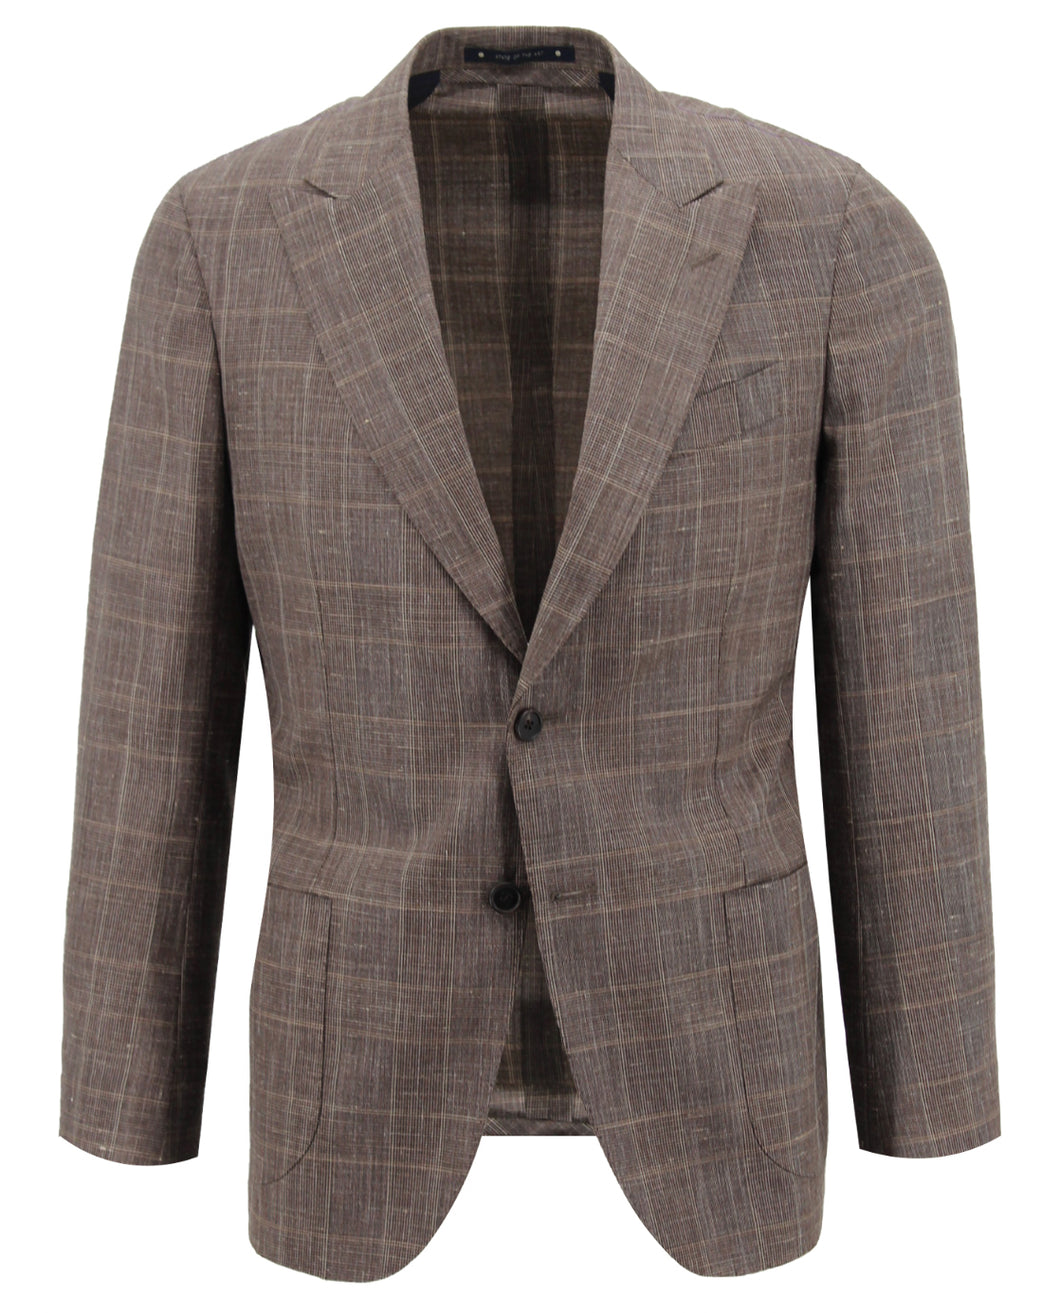 Tan Glen Plaid Suit